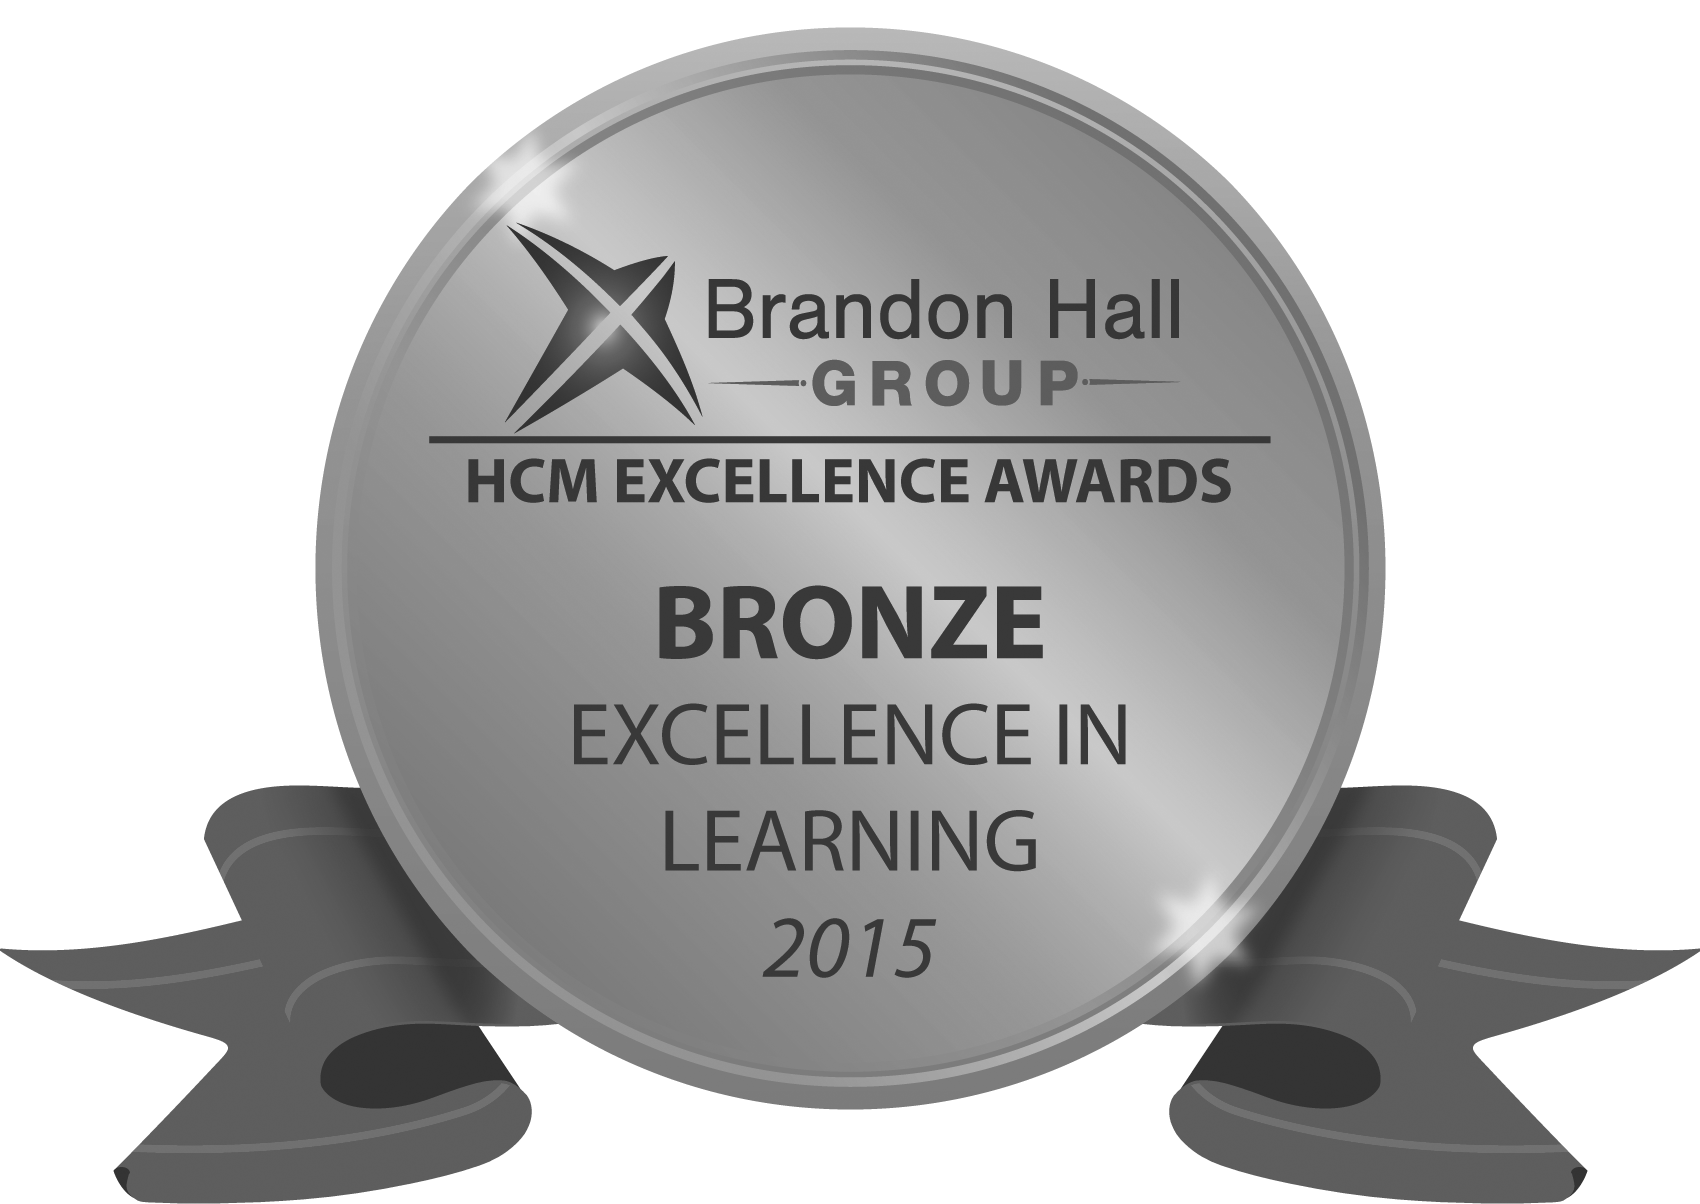 bronze learning award 2015